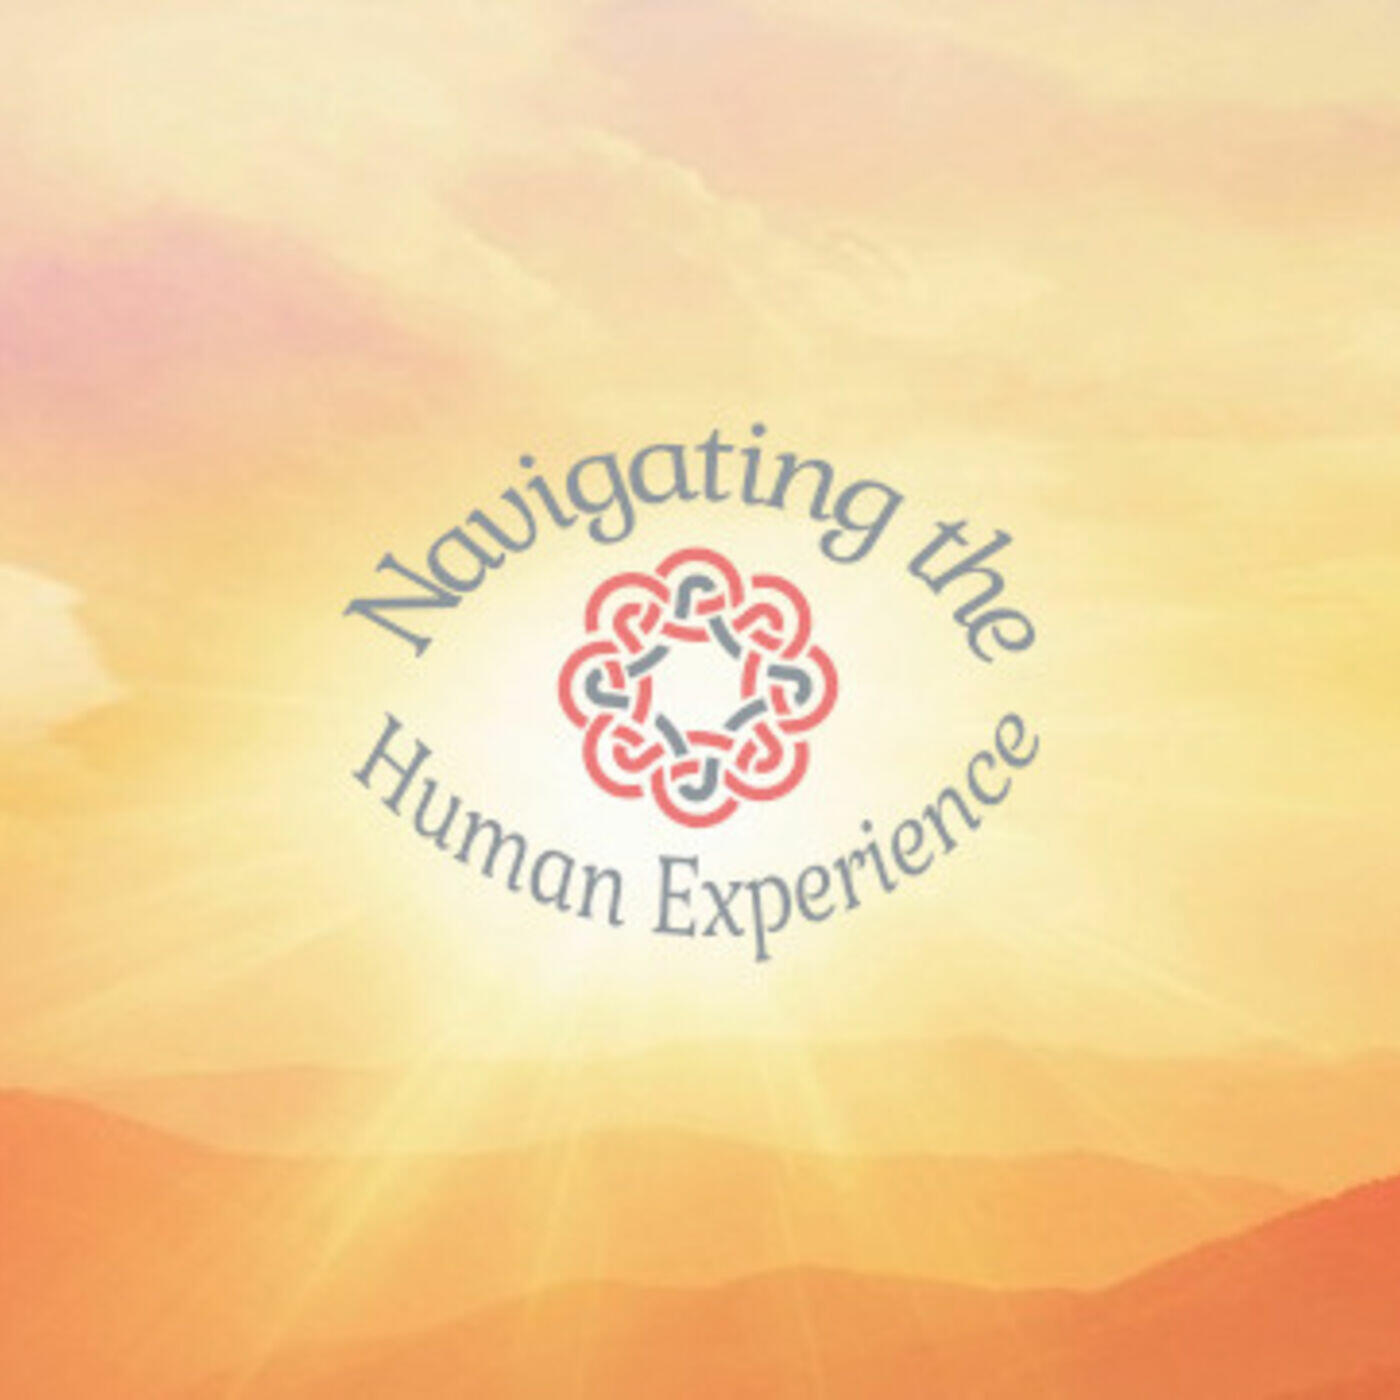 Navigating the Human Experience